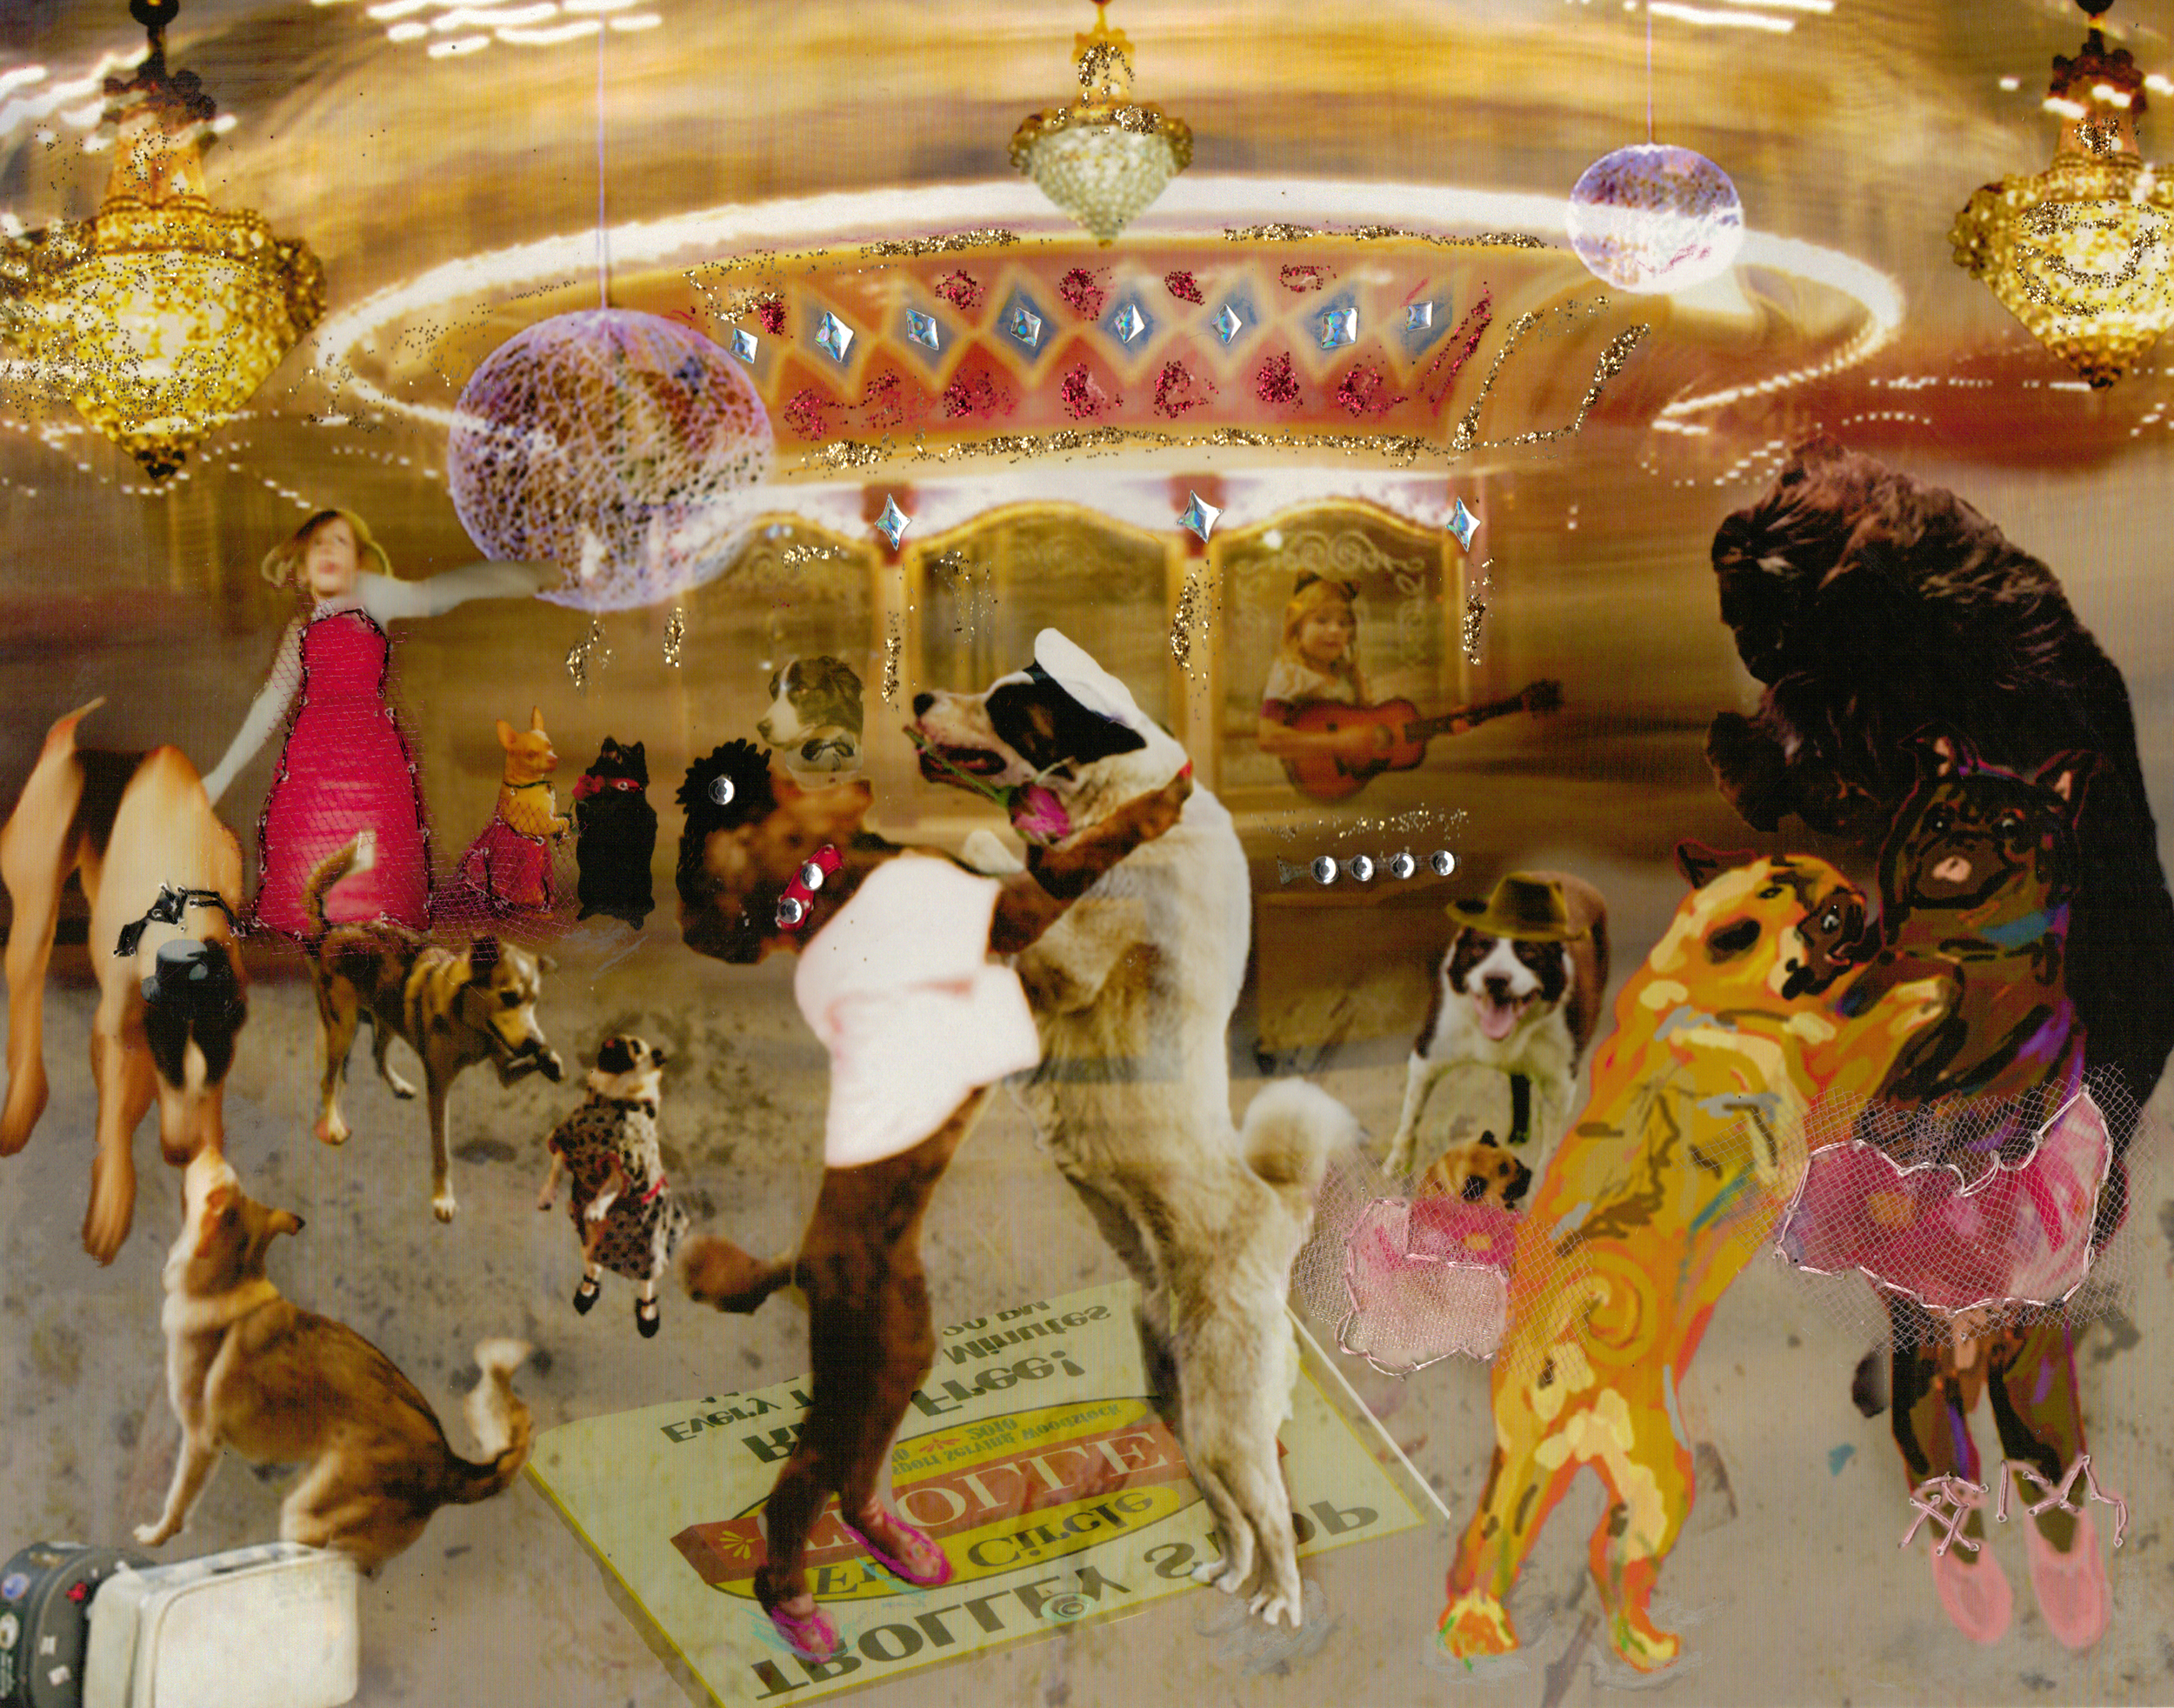 37 Collage Dancing at the Carousel.jpg